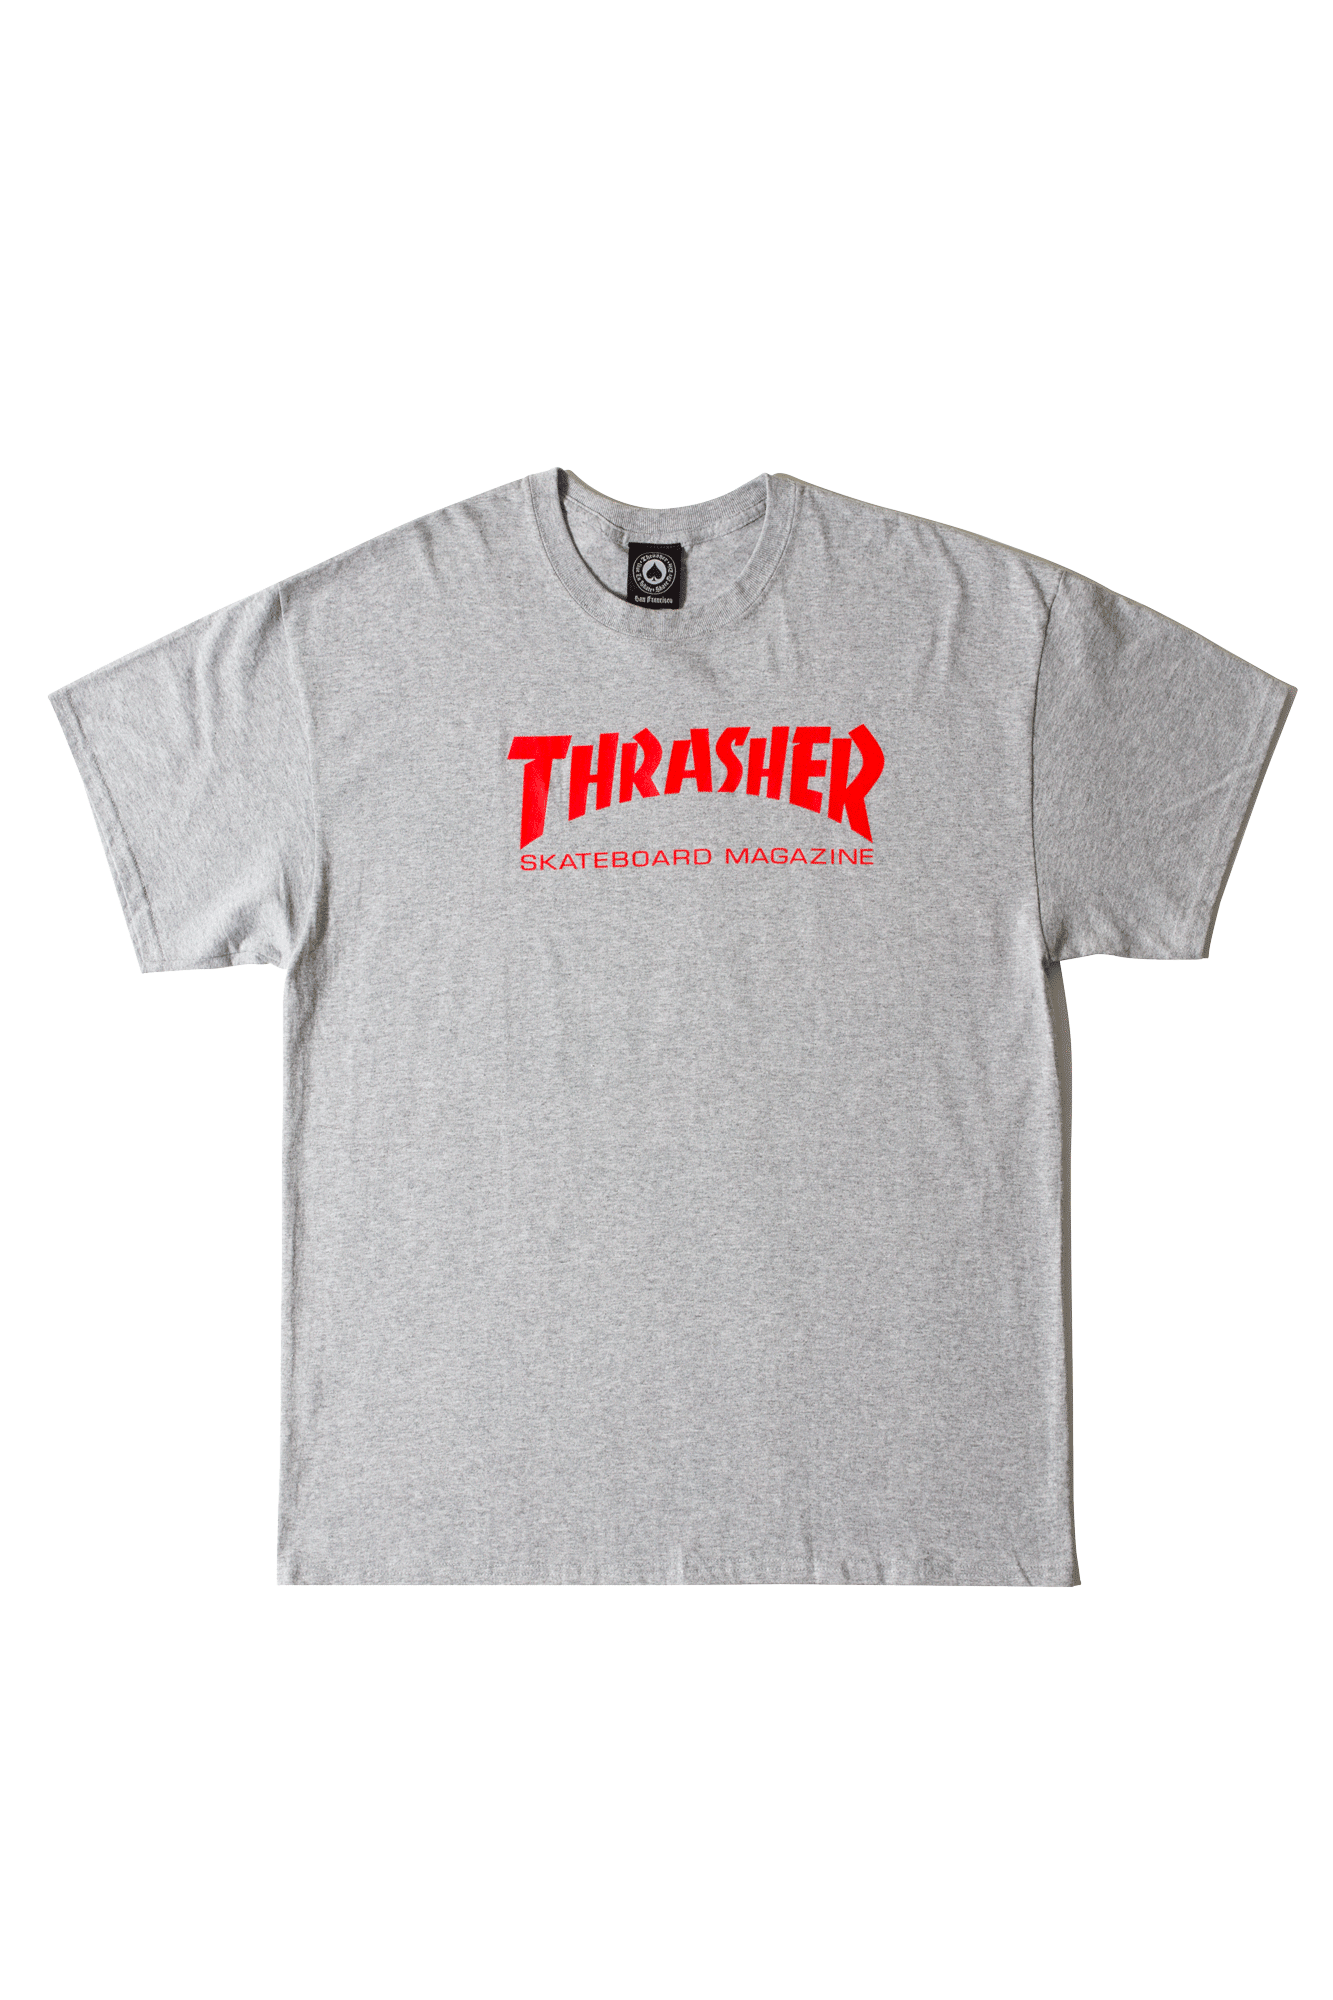 Thrasher T-Shirts Skate Mag Grigio 311027#000#GREY#S - One Block Down